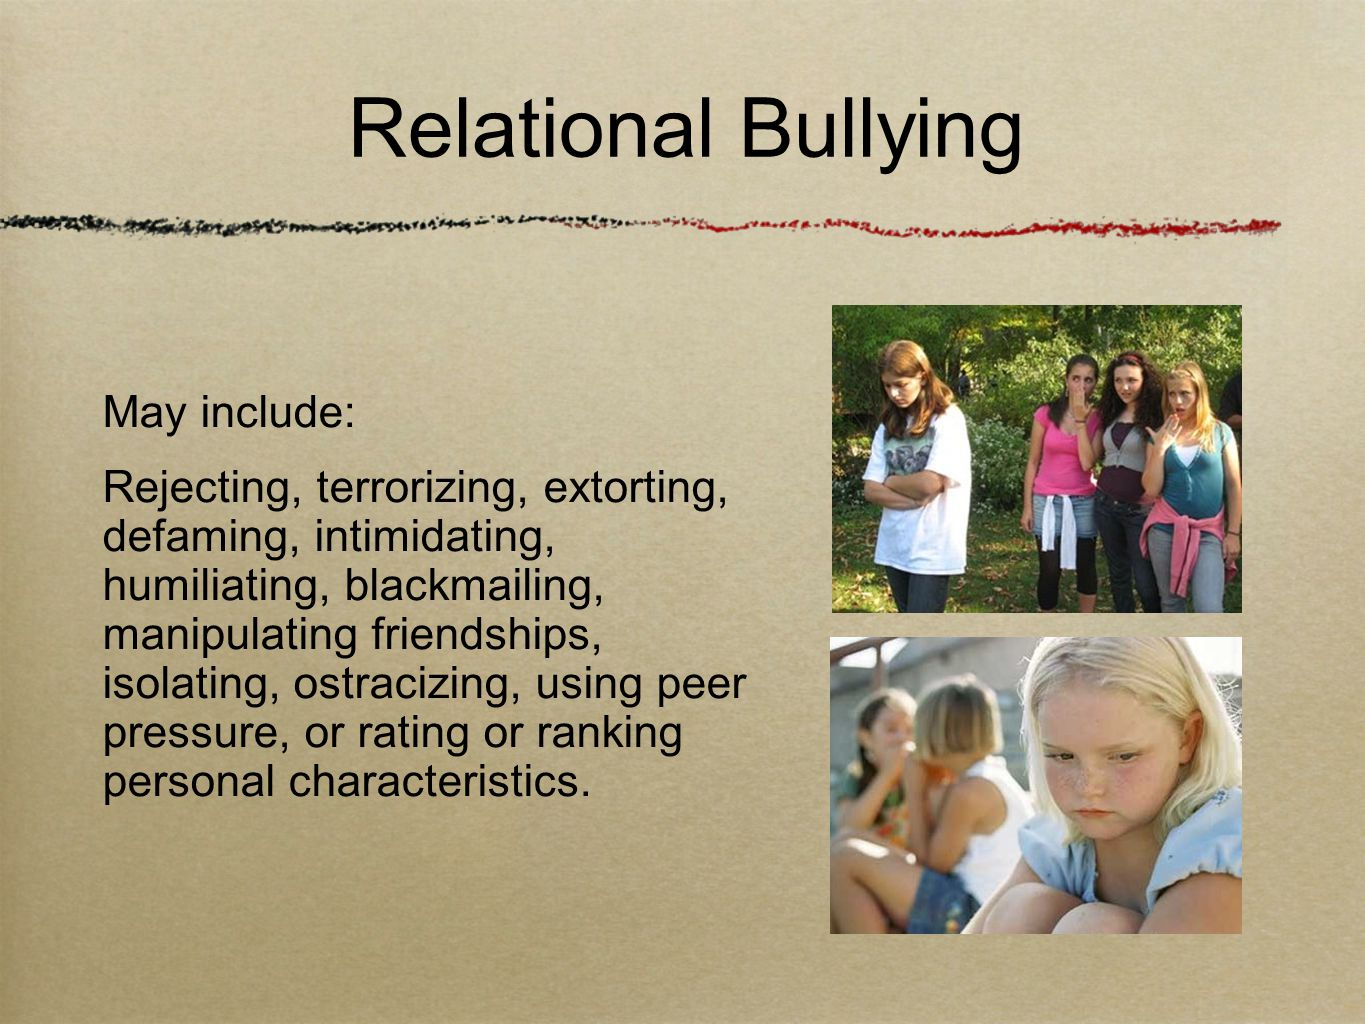 May include: Rejecting, terrorizing, extorting, defaming, intimidating, humiliating, blackmailing, manipulating friendships, isolating, ostracizing, using peer pressure, or rating or ranking personal characteristics.